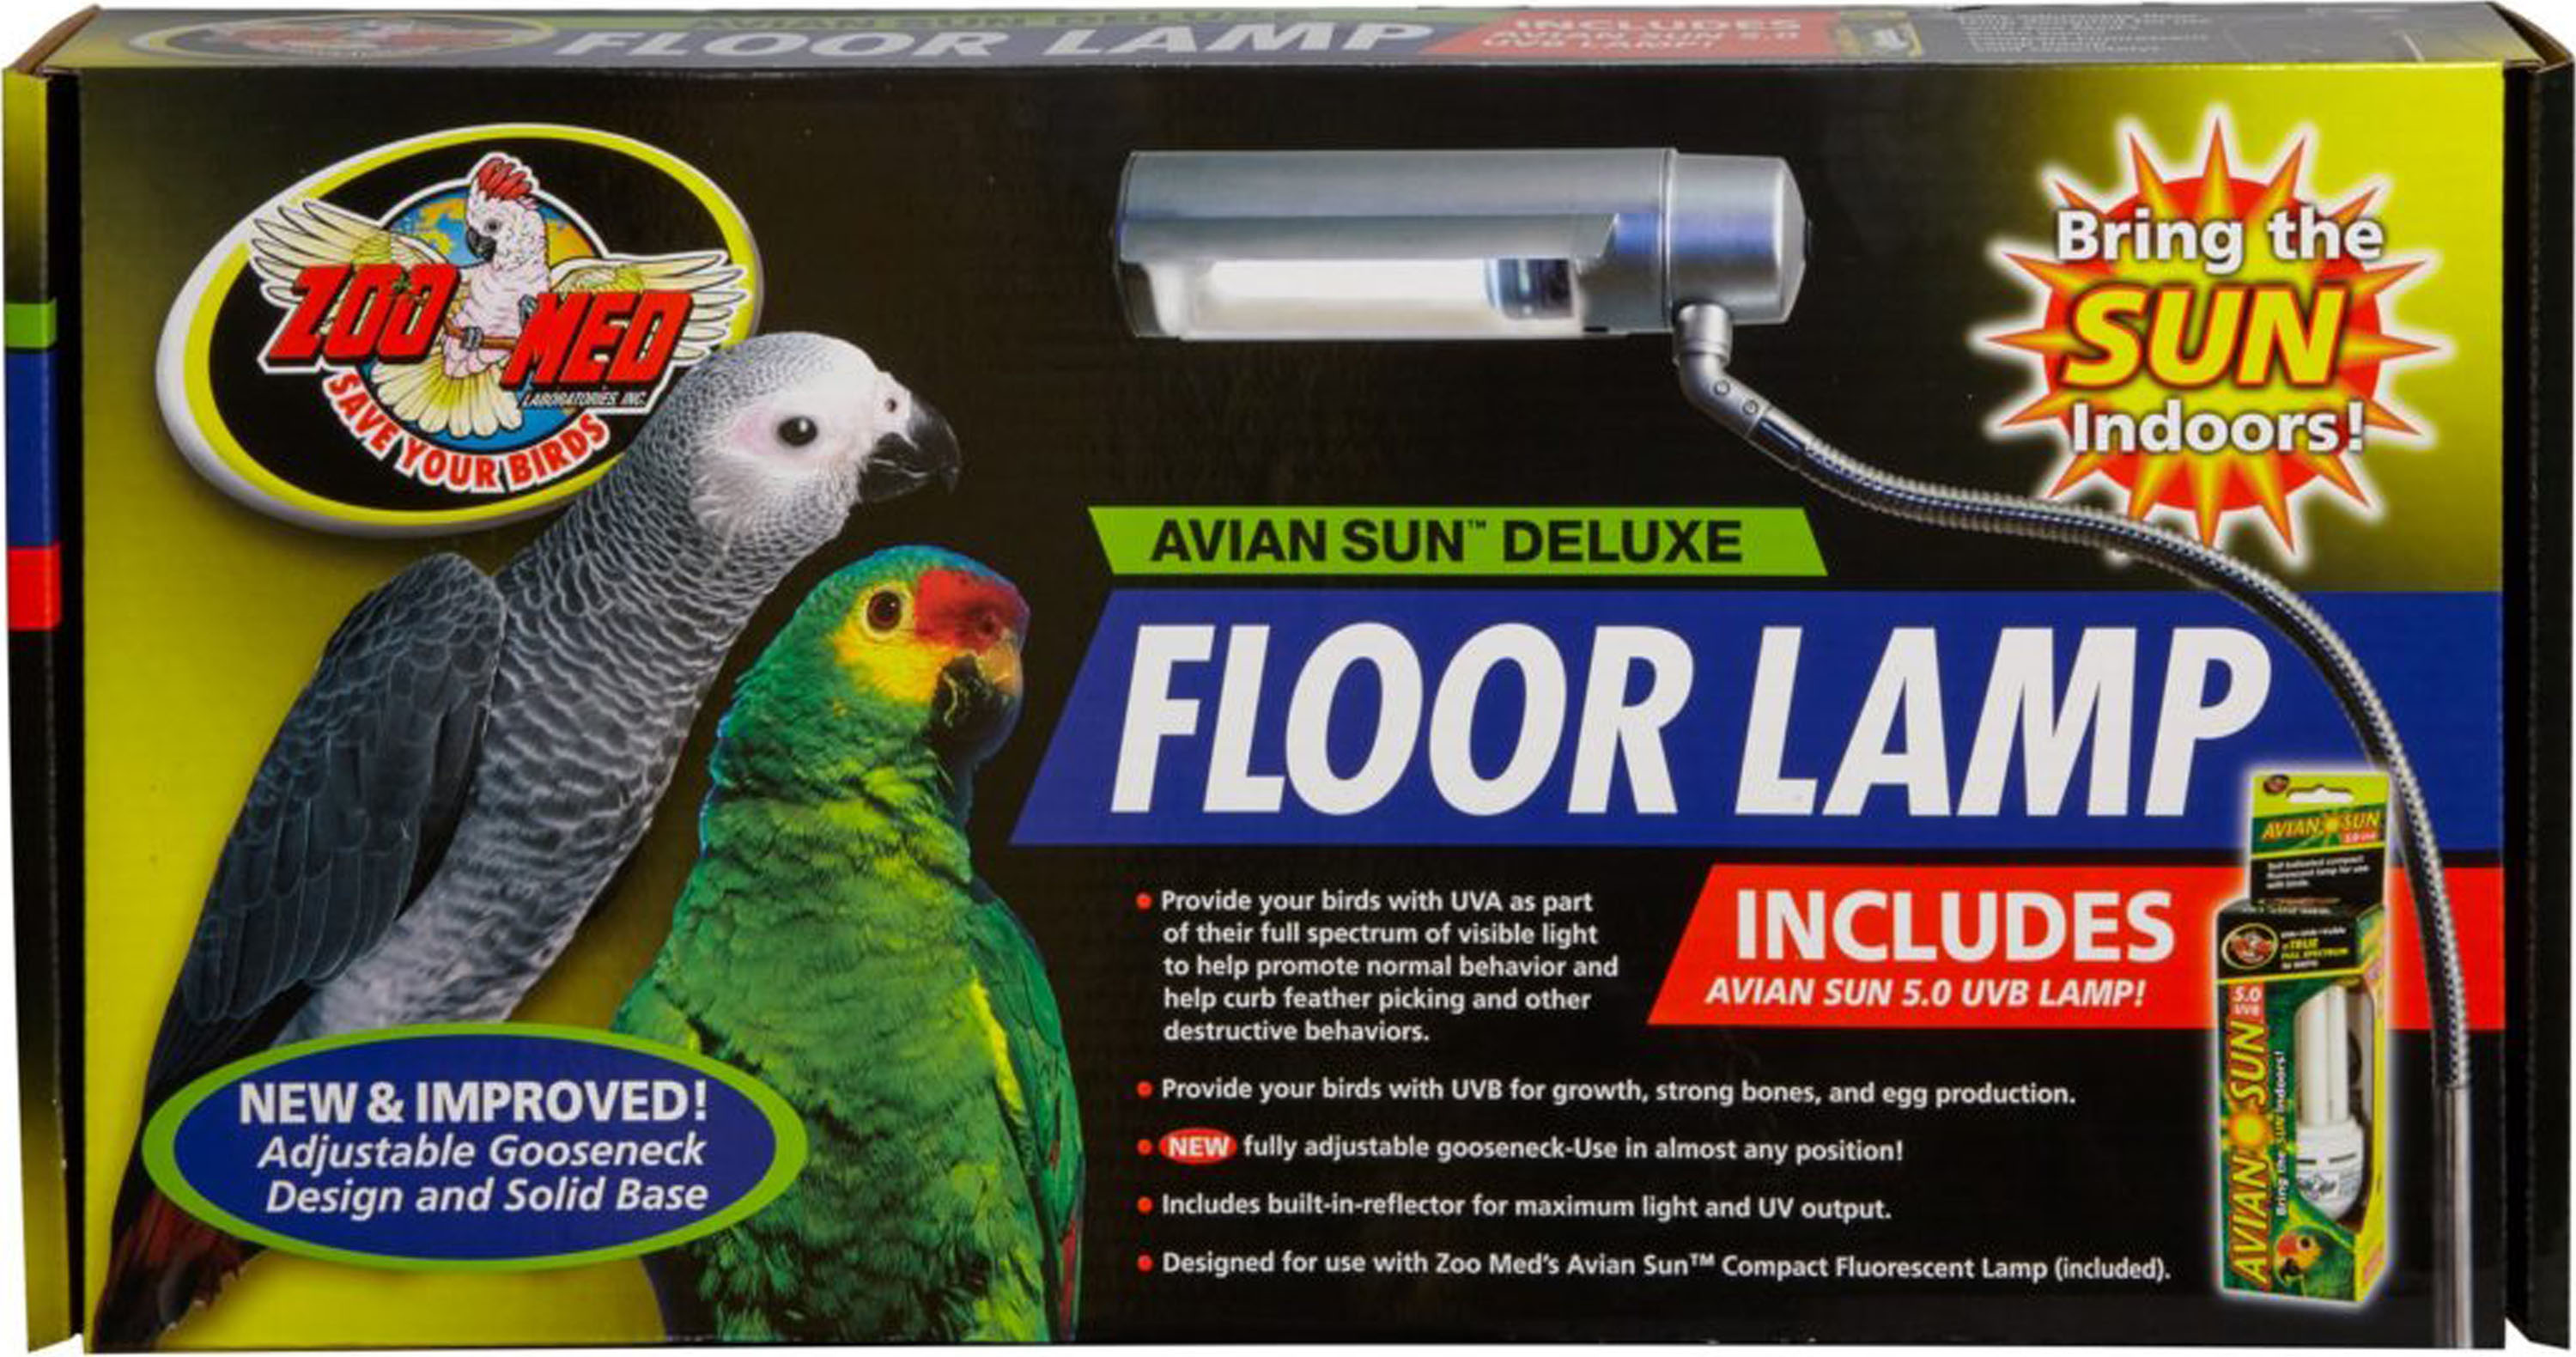 AVIANSUN DELUXE FLOOR LAMP WITH AVIAN SUN - My Pet Store and More